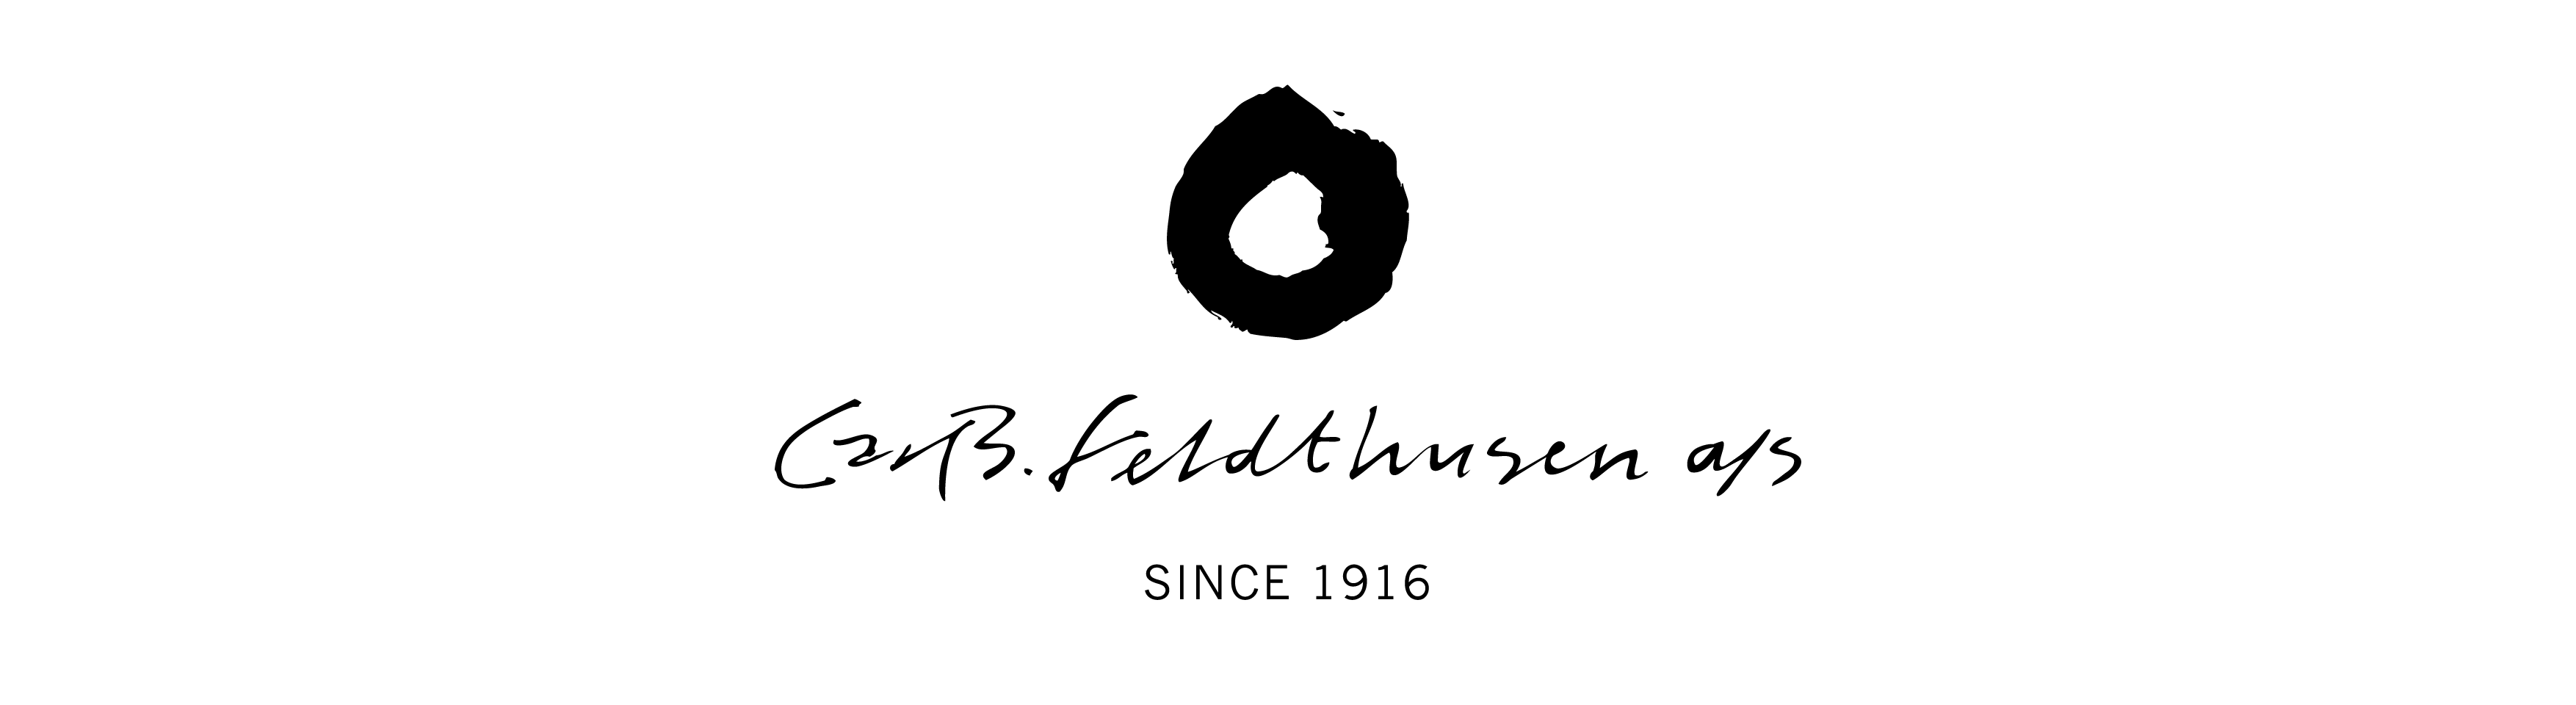 feldthusen-logo-since-1916-black-logo